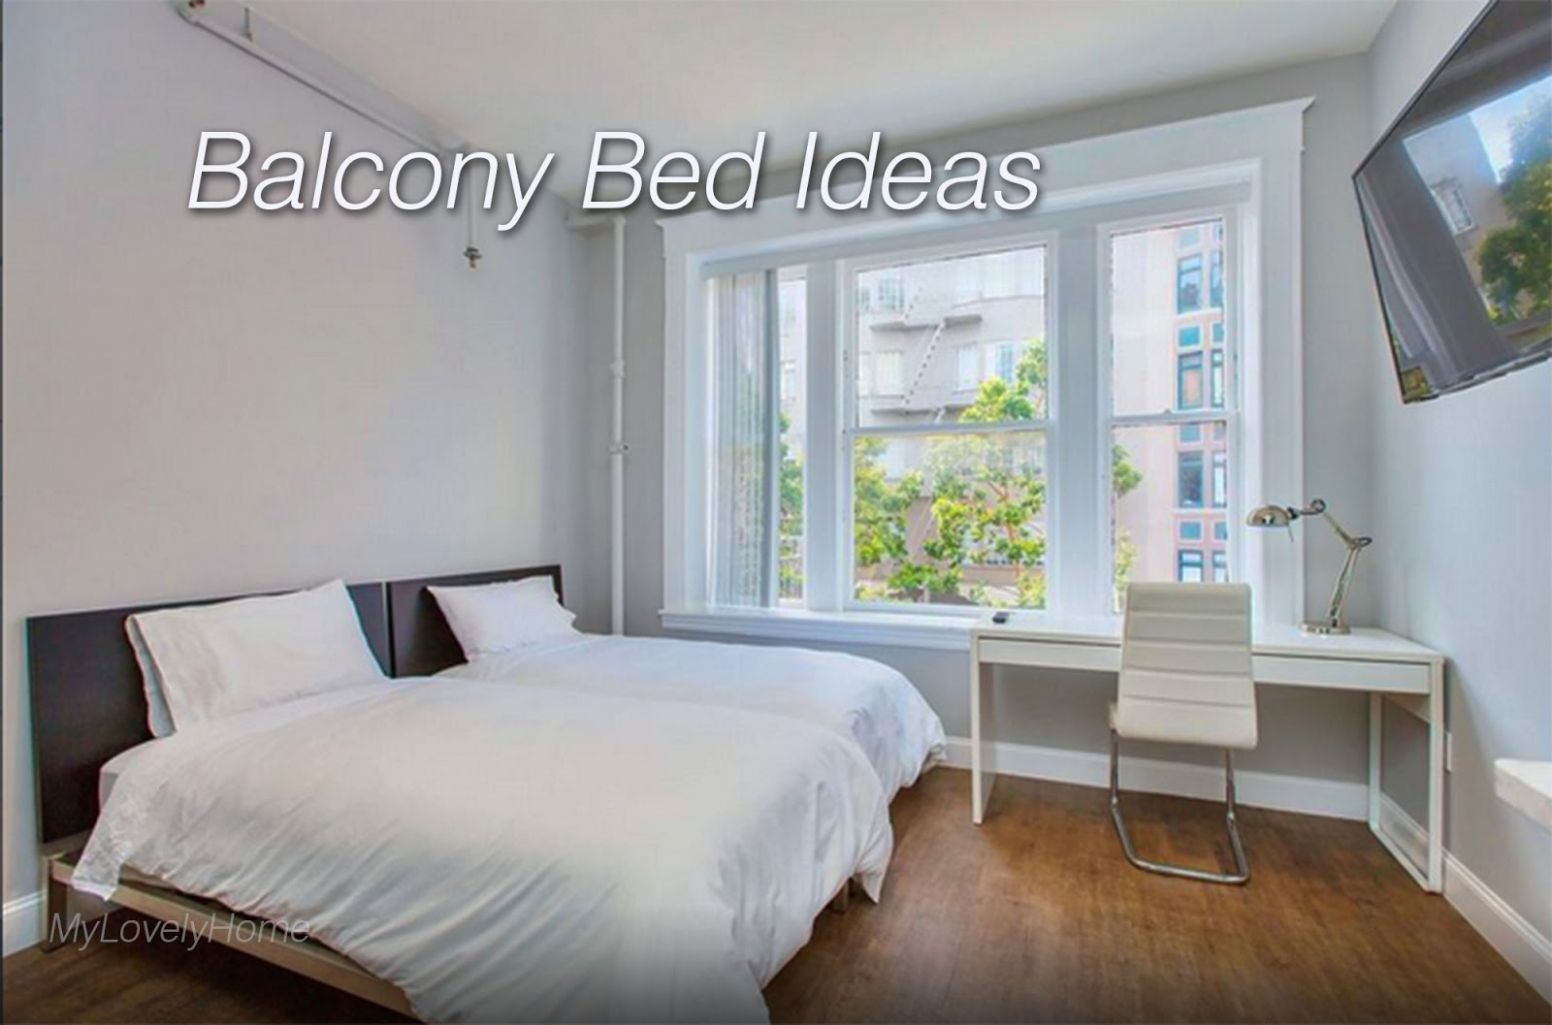 Balcony Bed Ideas Pictures Design - My Lovely Home - balcony bedroom ideas